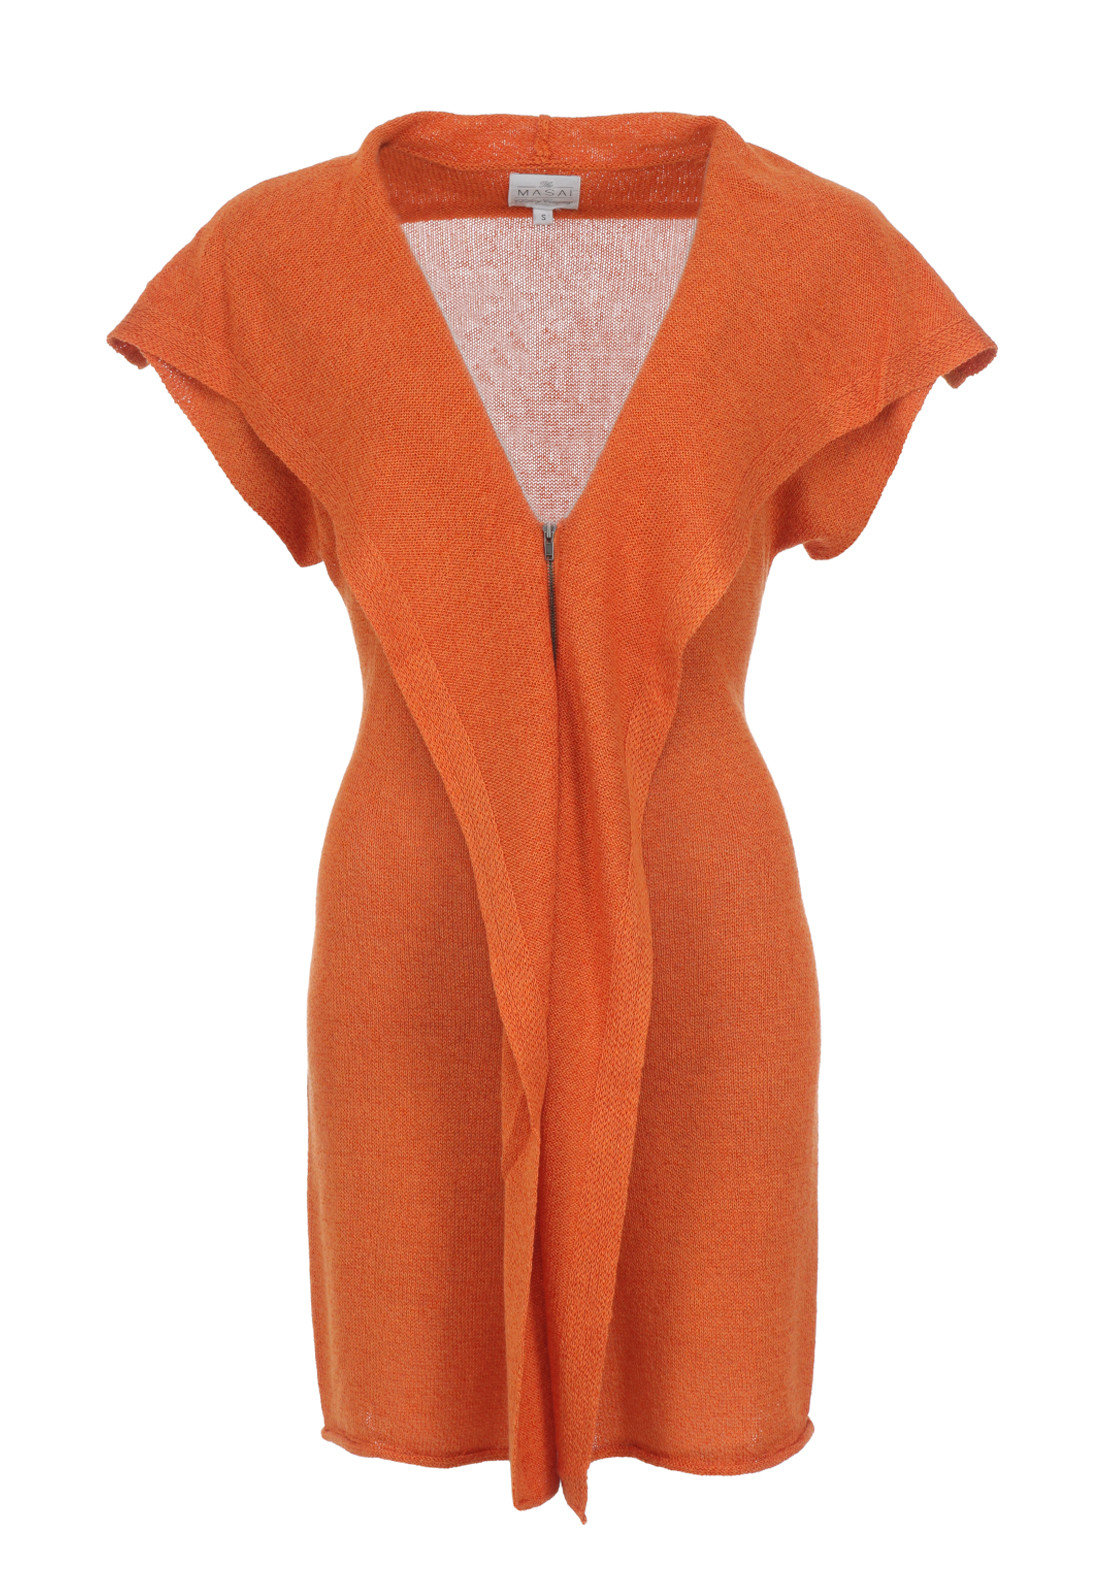 The Masai Clothing Company Luba Sleeveless Cardigan, Orange